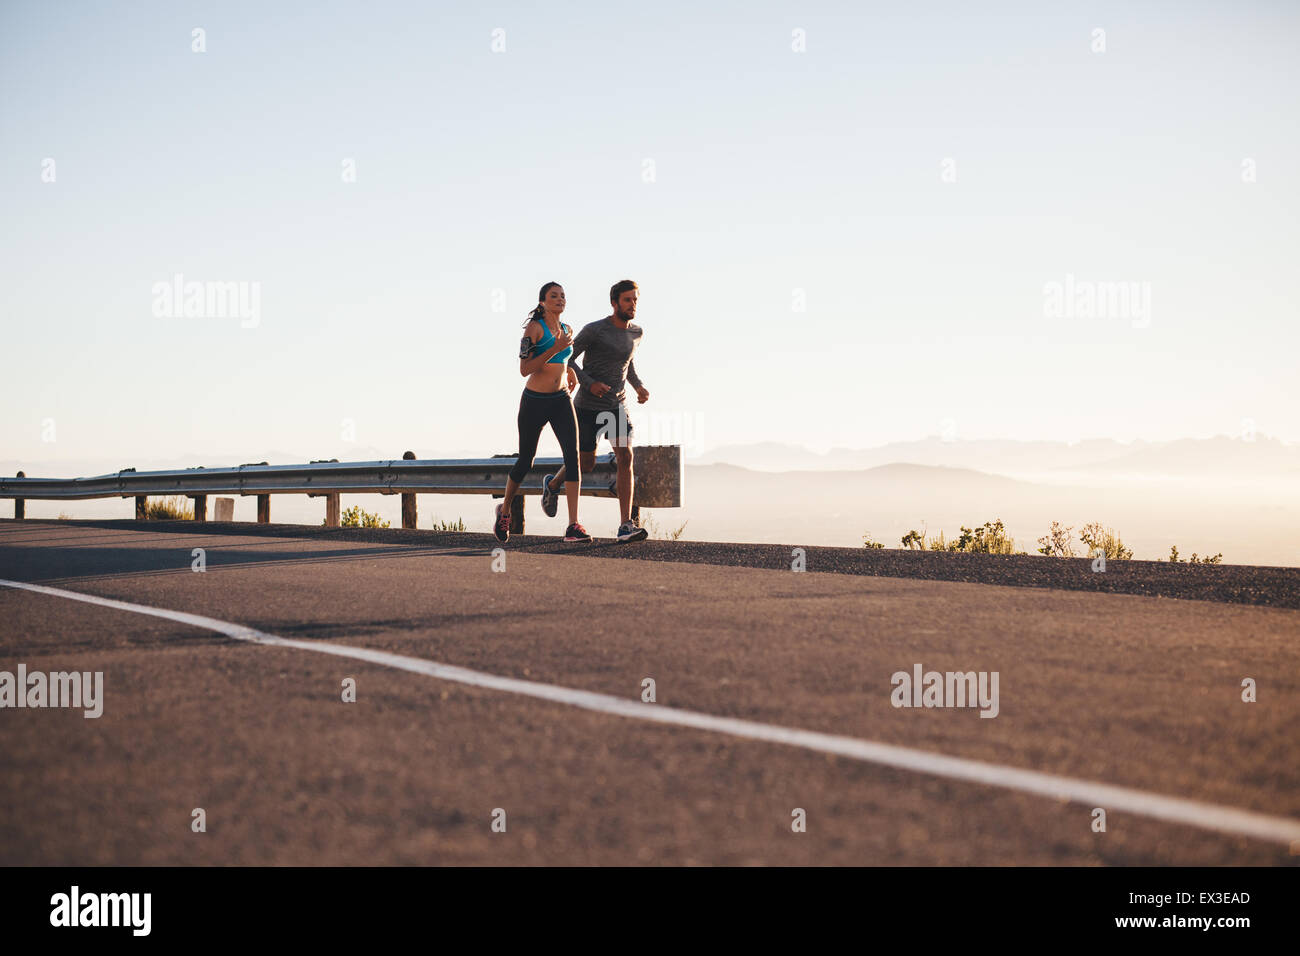 Outdoor shot of young couple on morning run. Young man and woman jogging on country road. - Stock Image